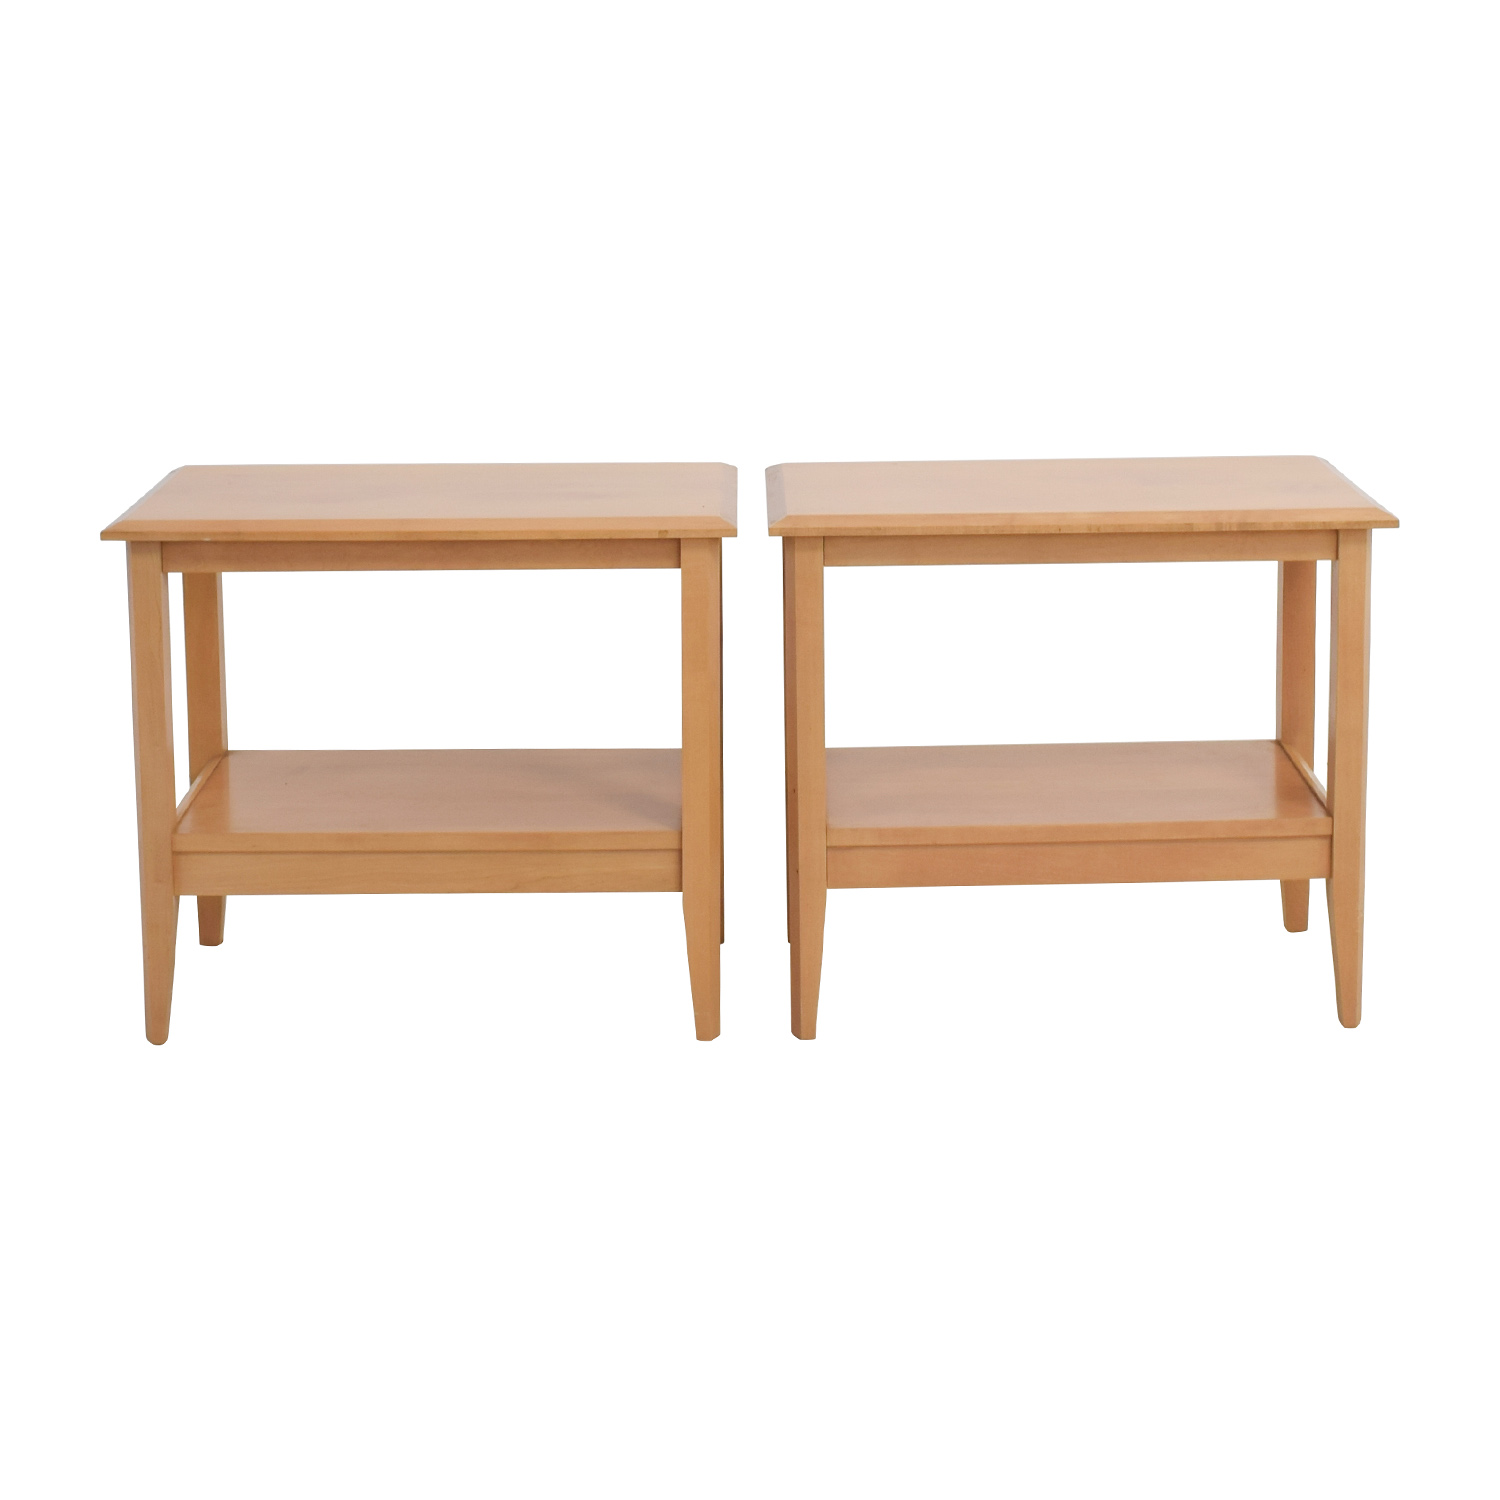 Baronet of Canada Baronet Ungava Wood End Tables on sale